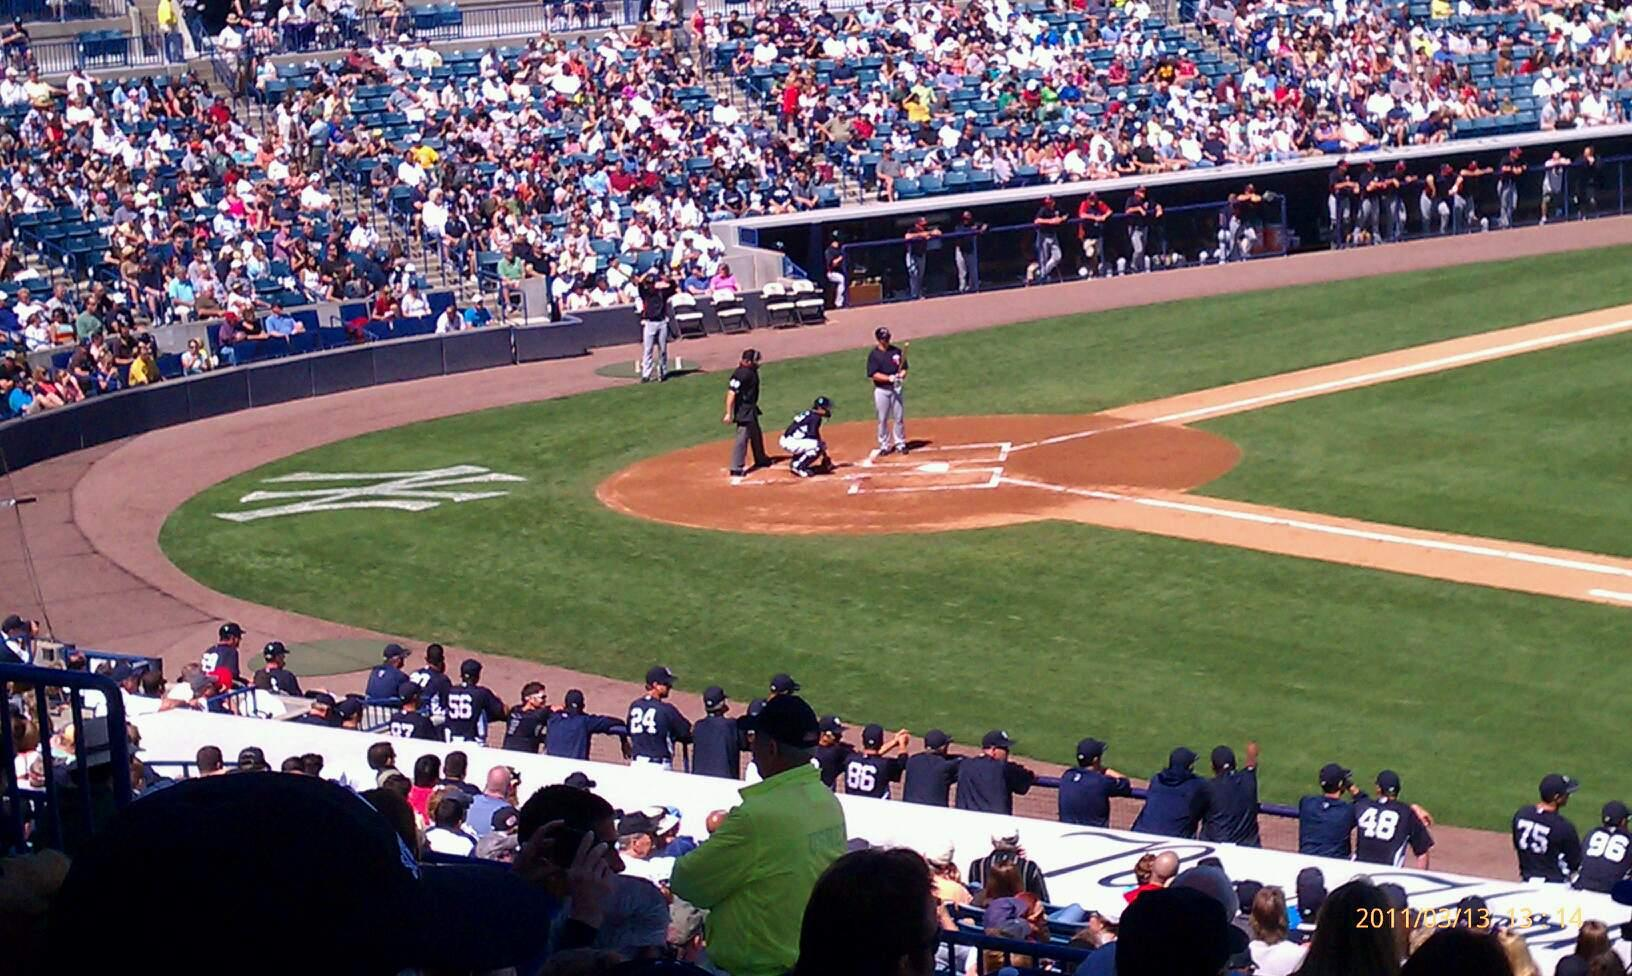 Sports News & Articles Scores, Pictures, Videos - ABC News George steinbrenner field pictures